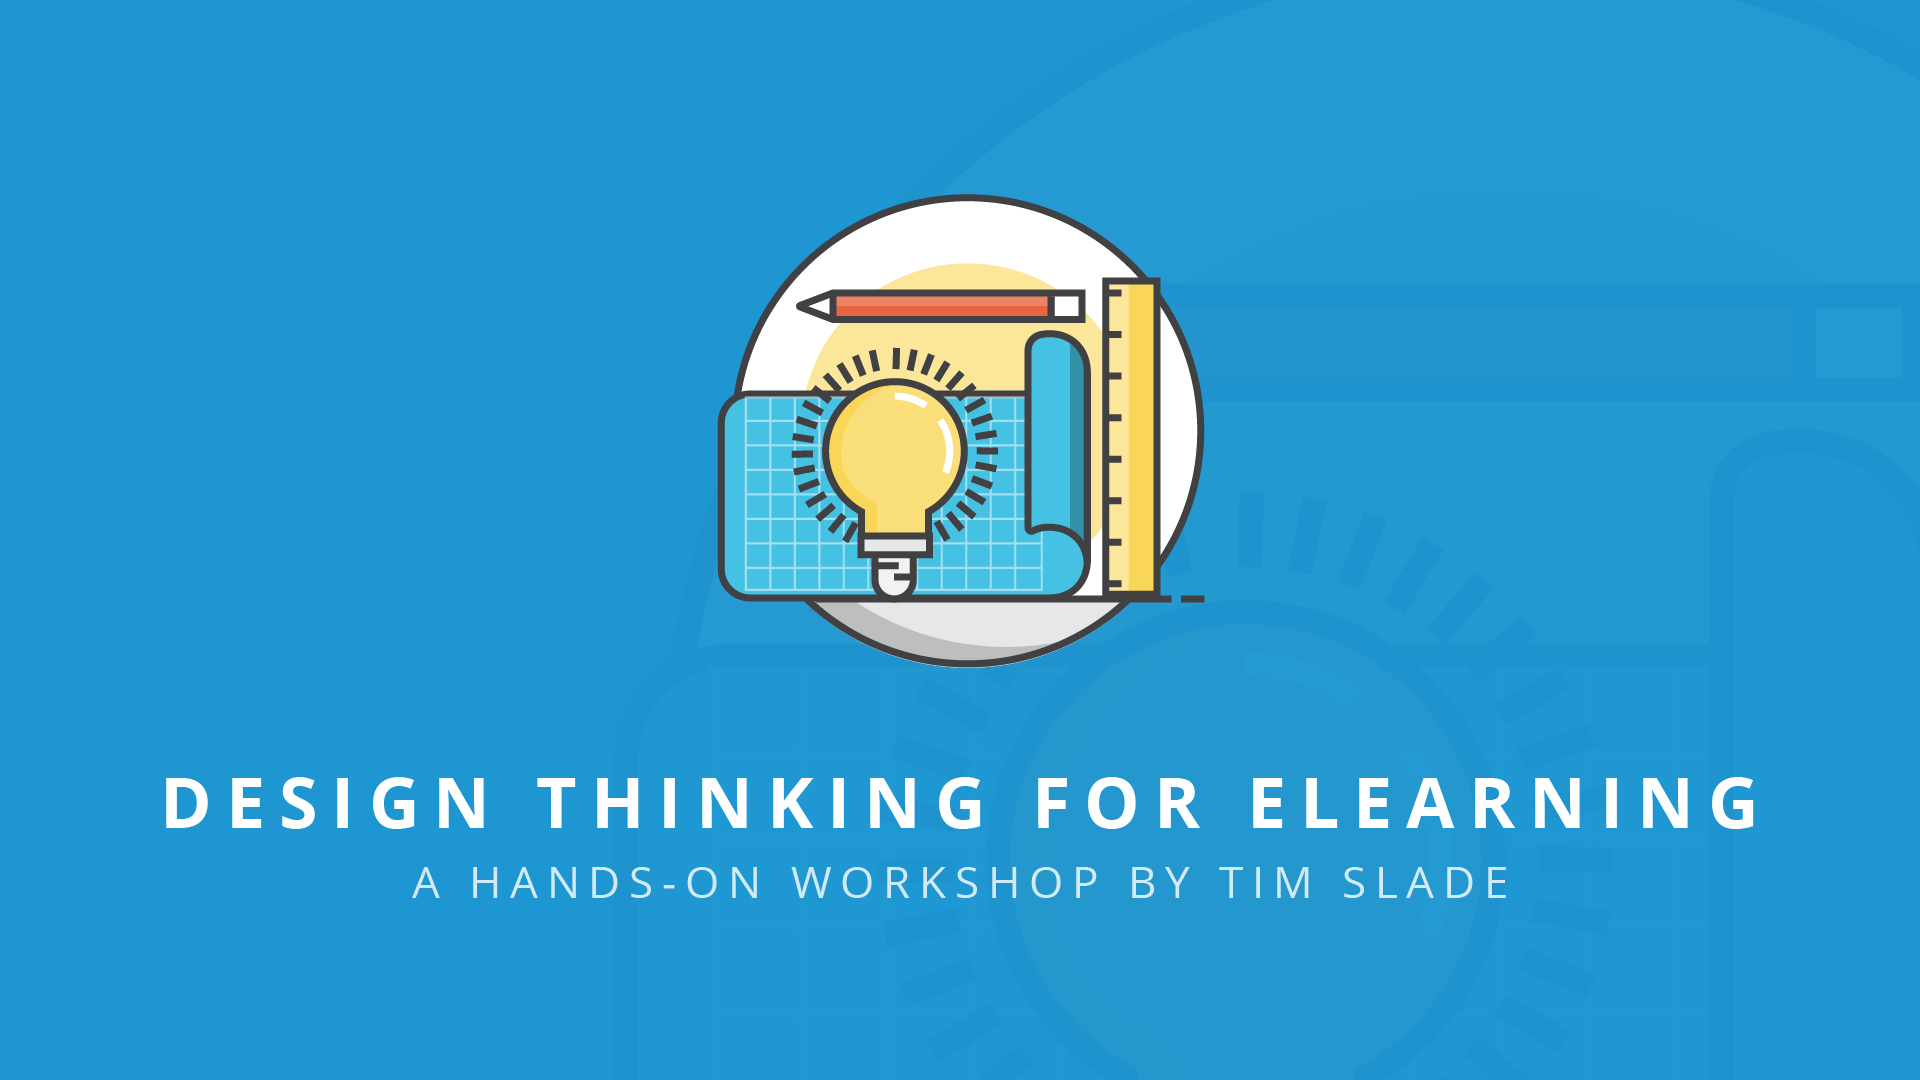 Design Thinking for eLearning - eLearning Workshops by Tim Slade